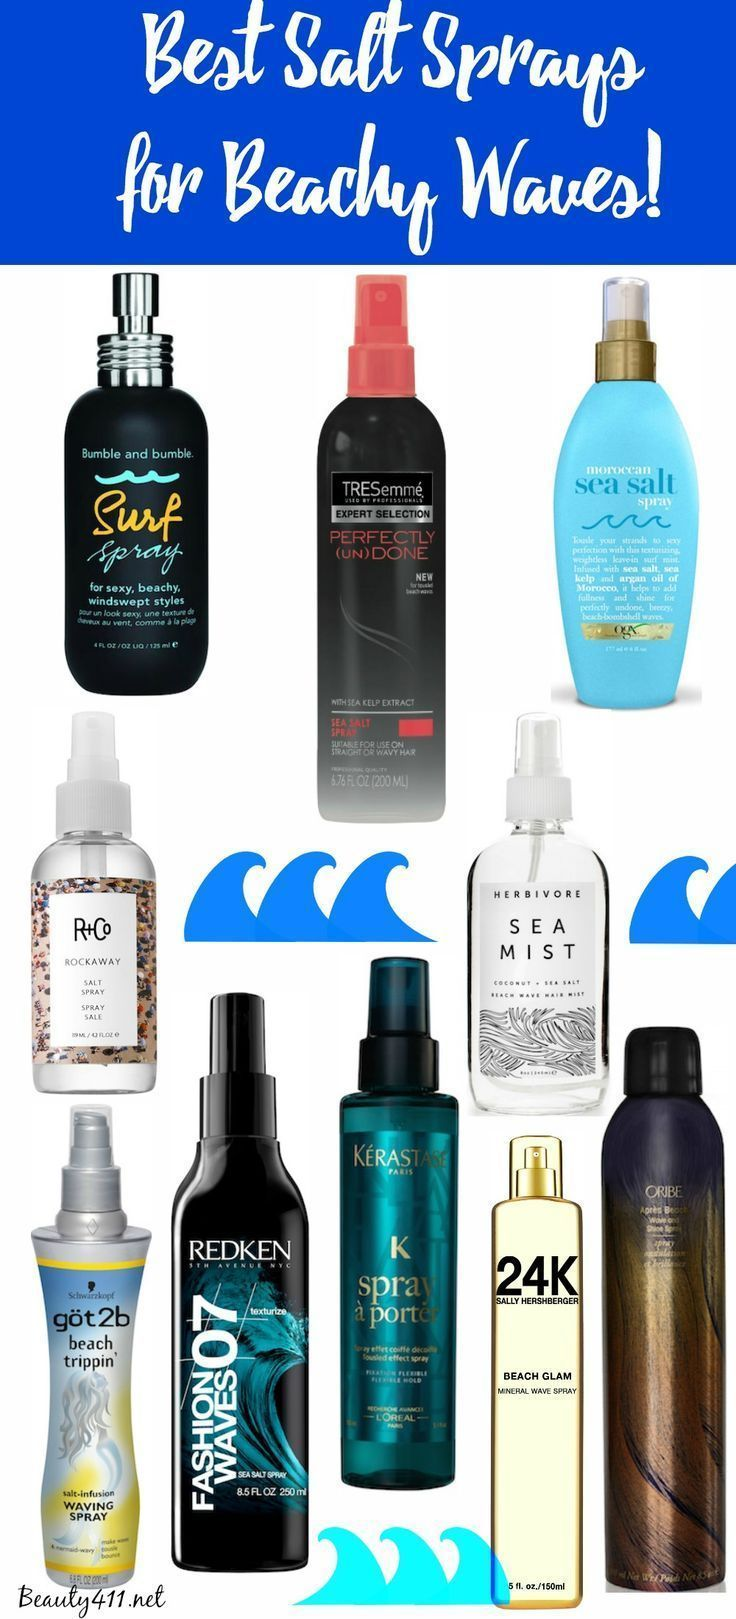 Not just for summer..a Salt Spray makes a great texturizer year around!